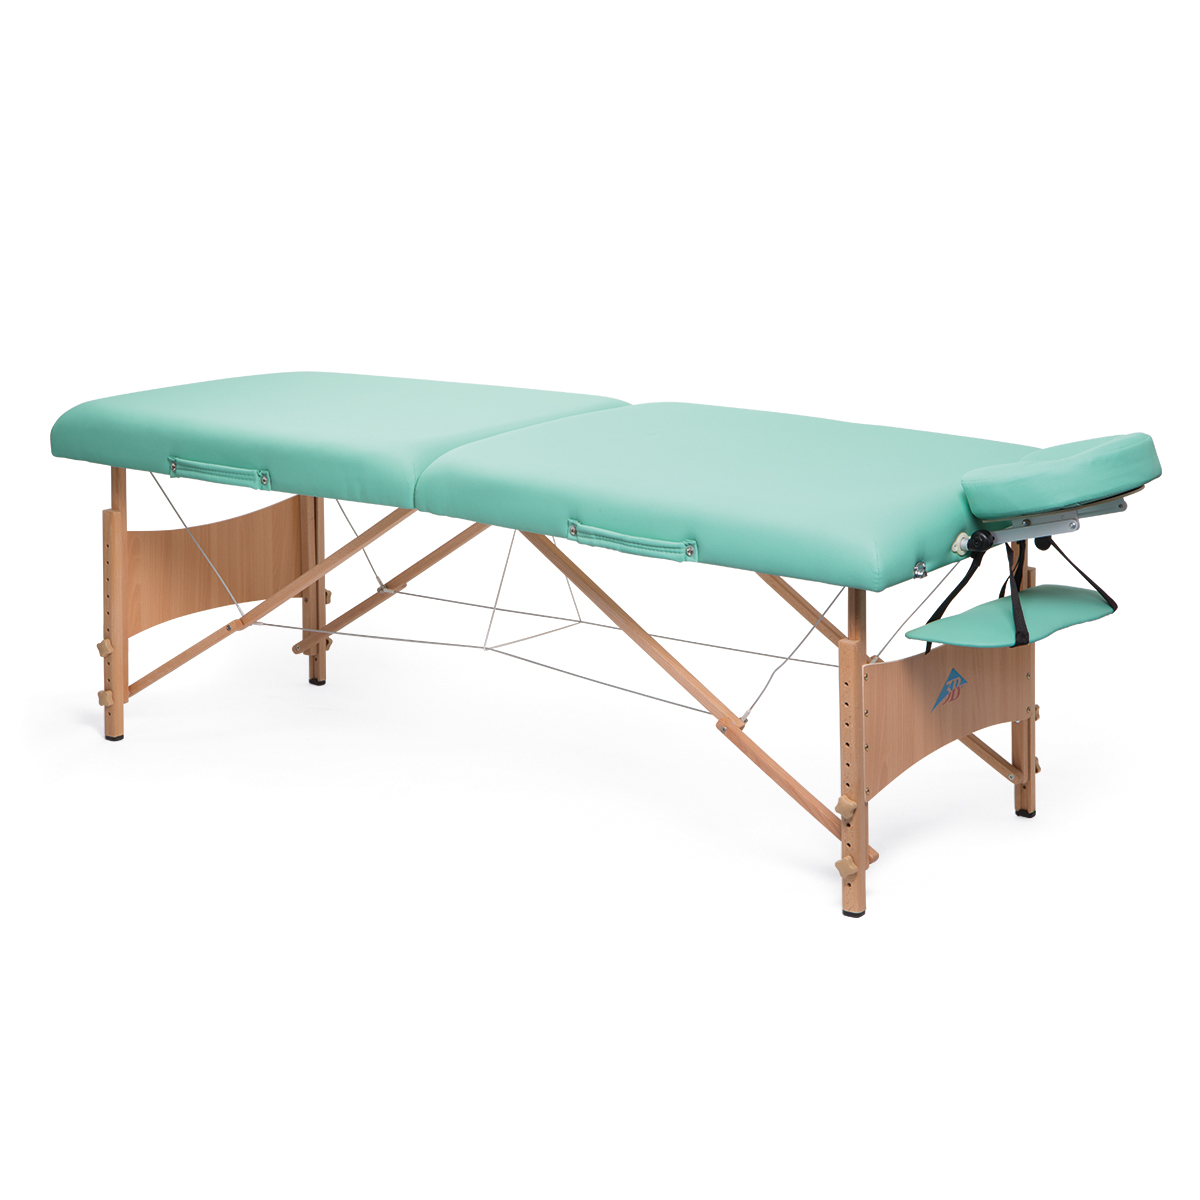 Deluxe portable massage table green 1013728 3b for Massage table